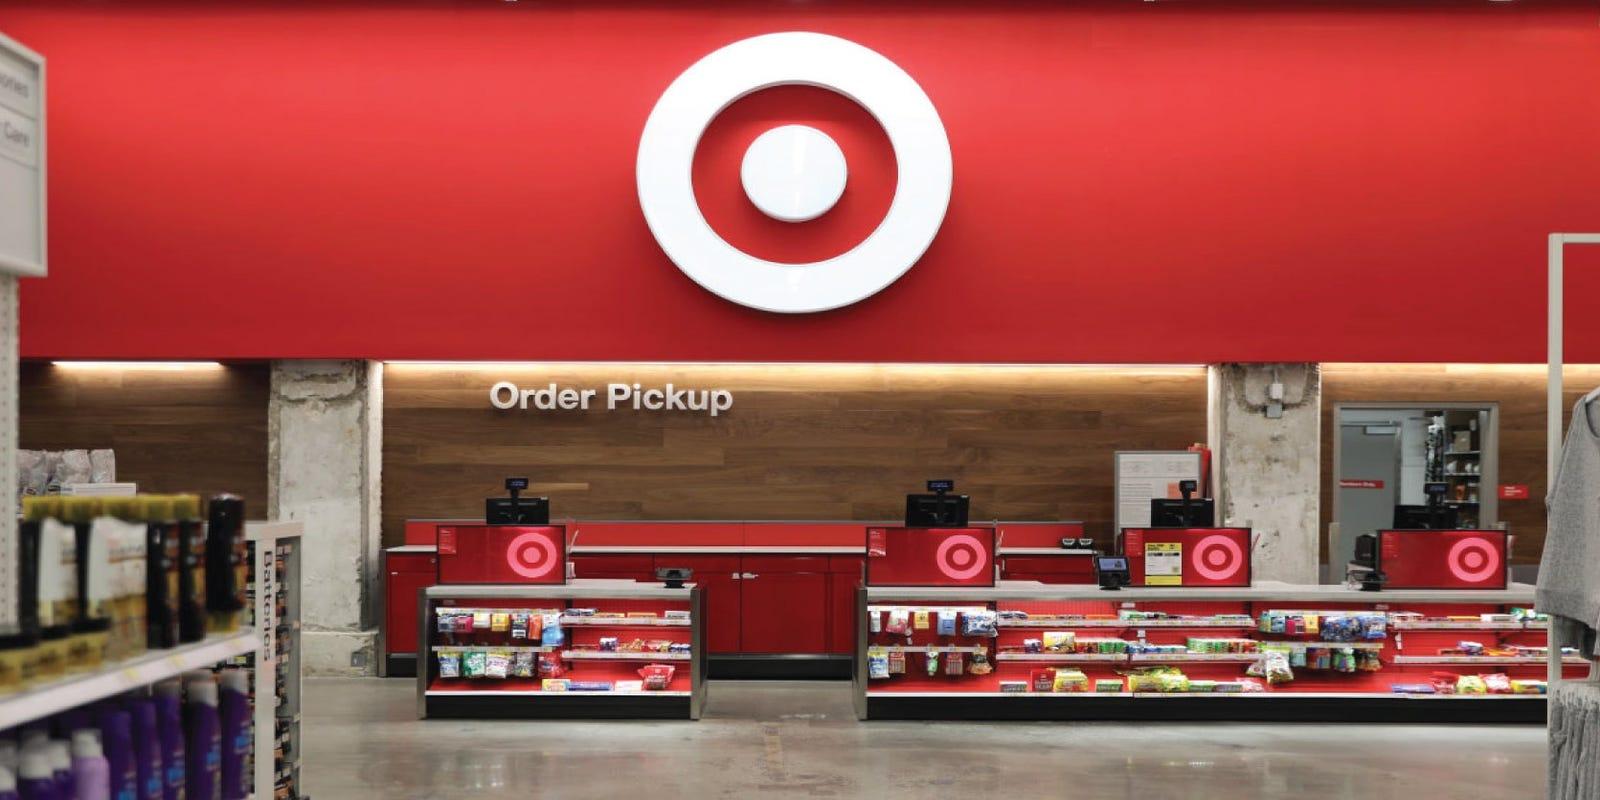 interior of a target store jpg?width=1600&height=800&fit=crop